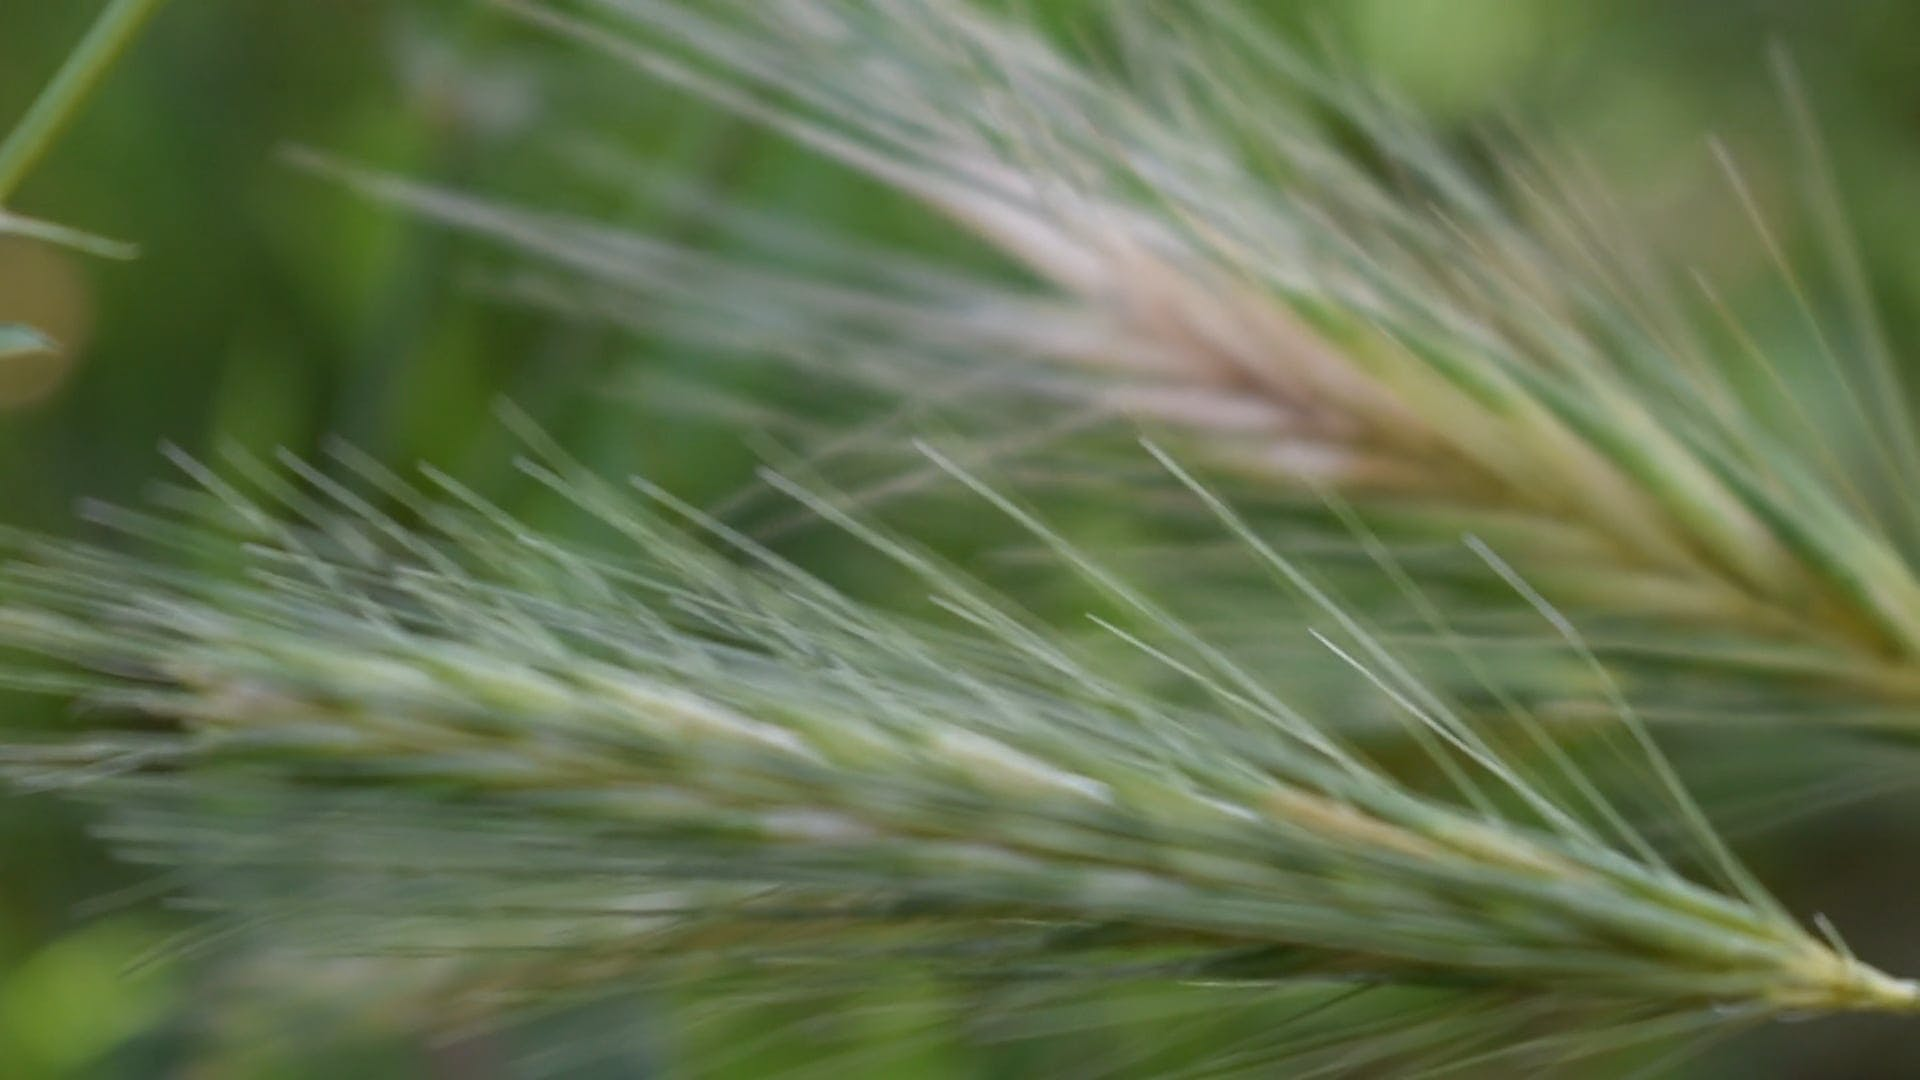 Close View Of A Barley Plant